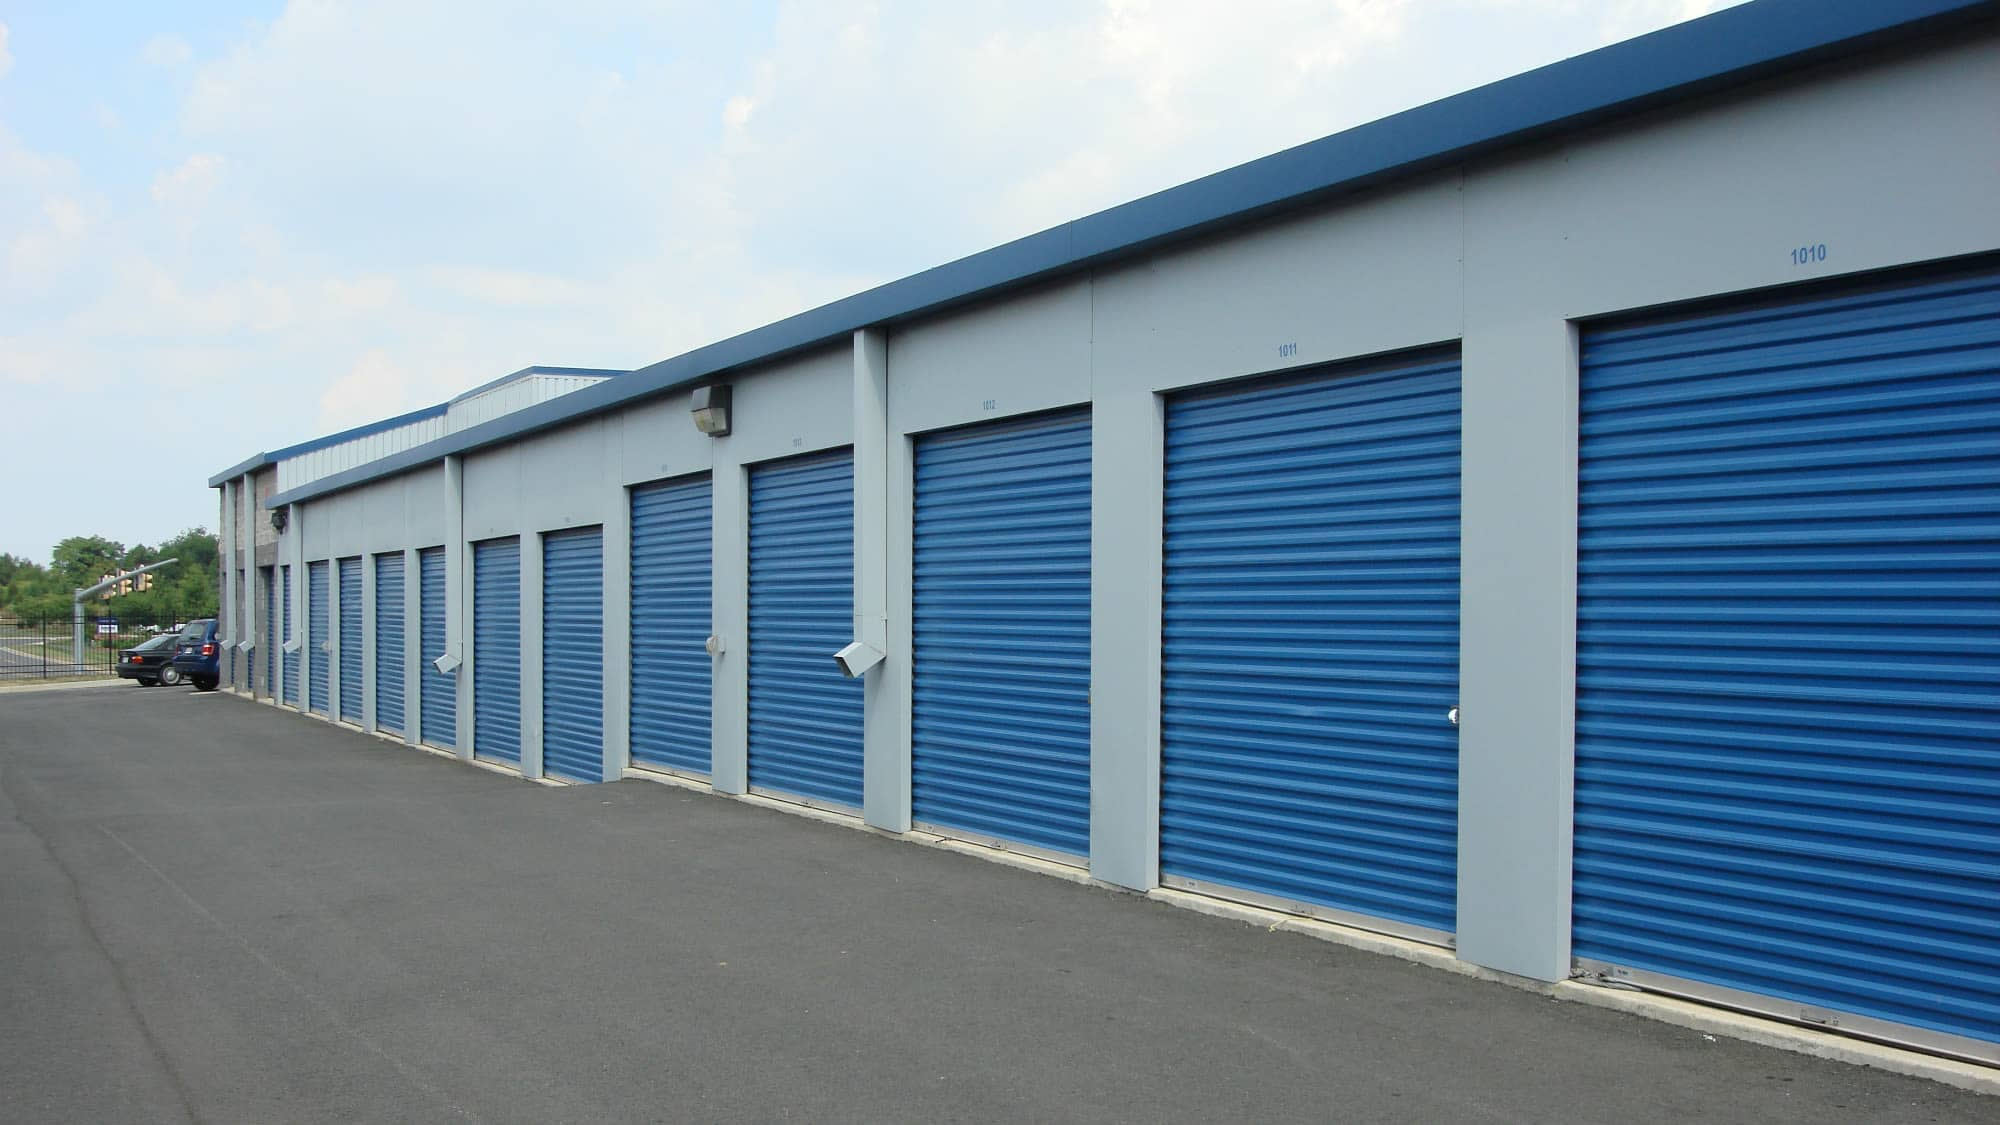 Outdoor units at Self Storage Plus in Sterling, VA